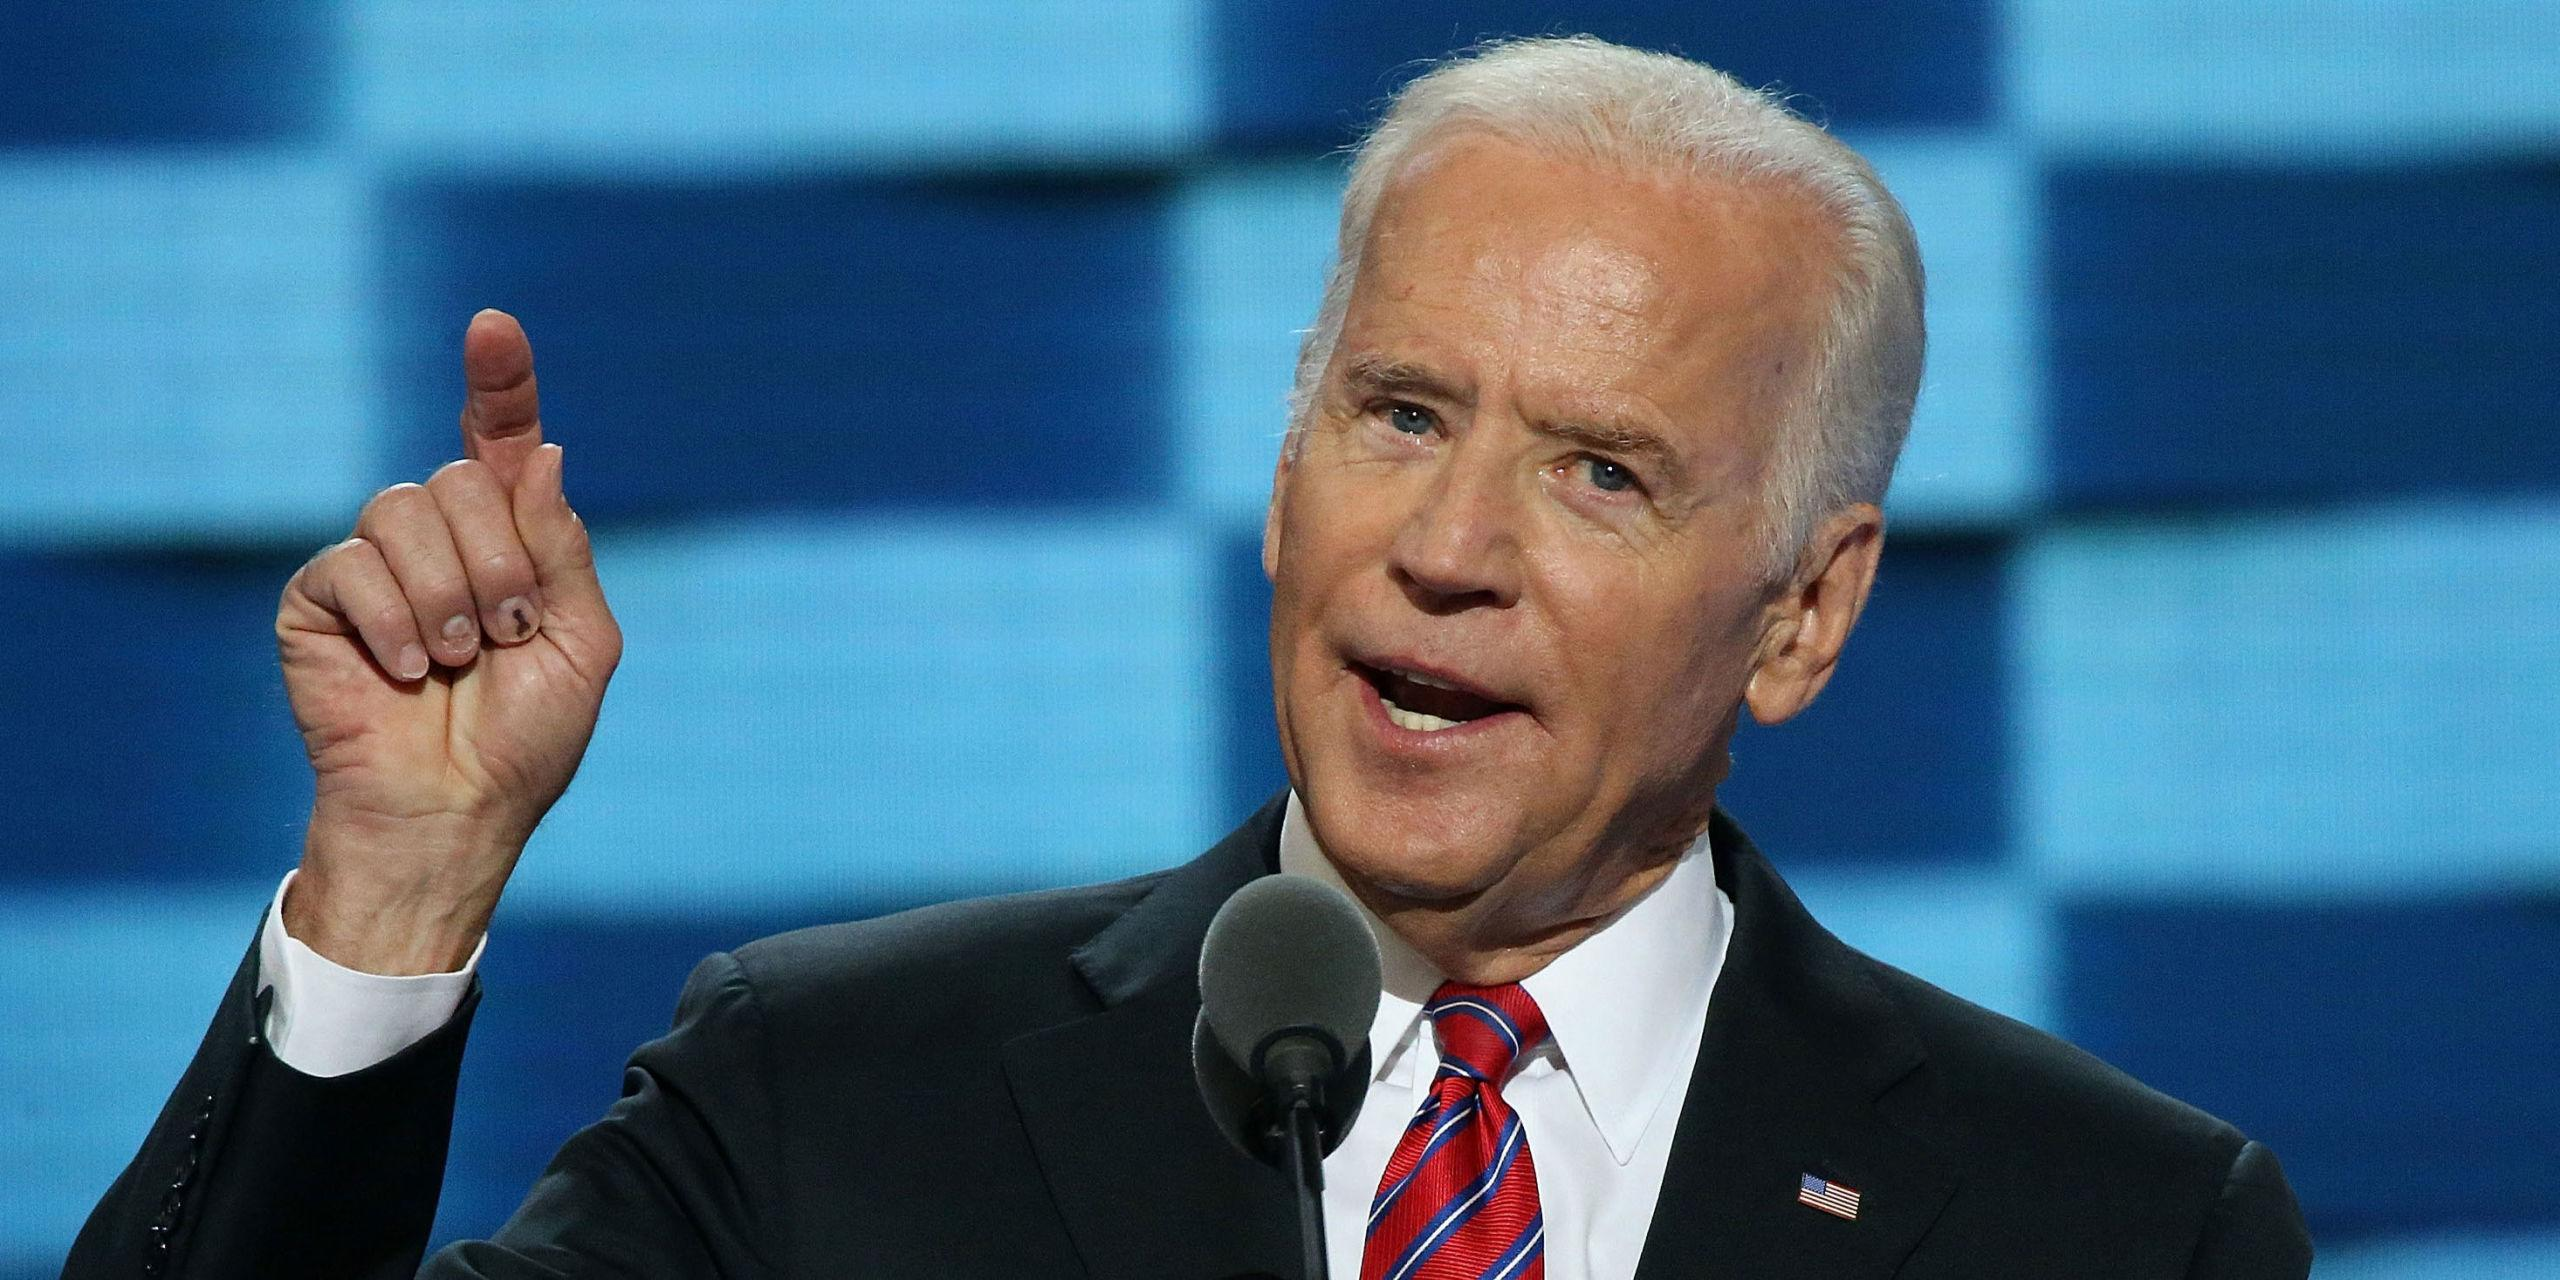 This Photo of Joe Biden Officiating a Same-Sex Wedding Is Absolutely Lovely